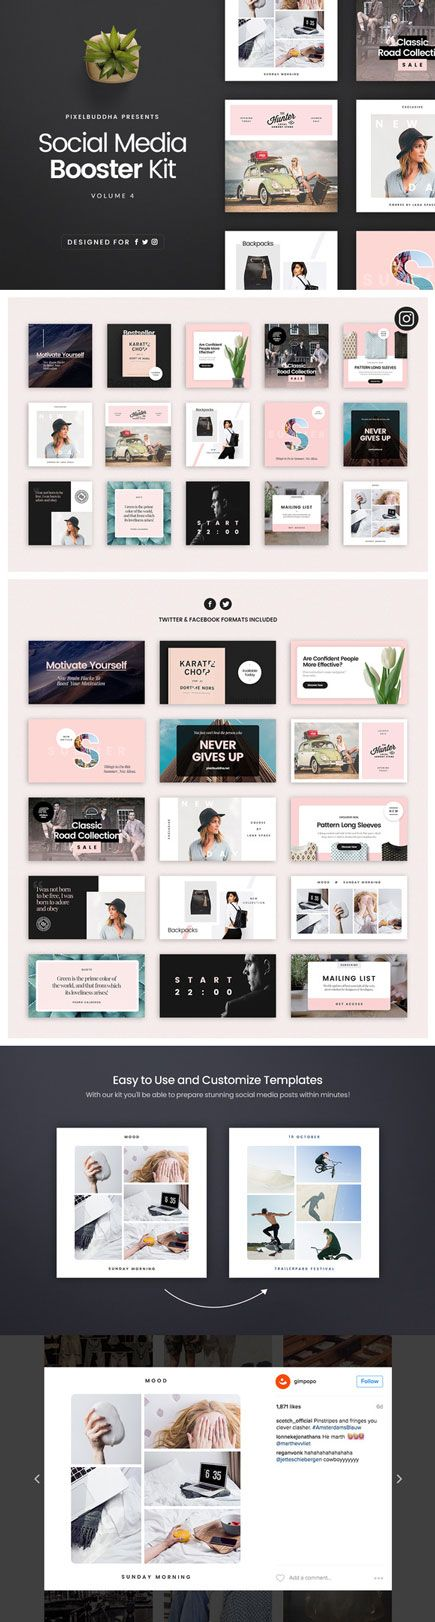 the #SocialMedia Booster Kit brings you the brand-new style: new colors, grids, and fonts. There is everything you need to fill your social media with impressive, standing out publications. #Instagram #facebook #twitter #fashion #eCommerce #branding